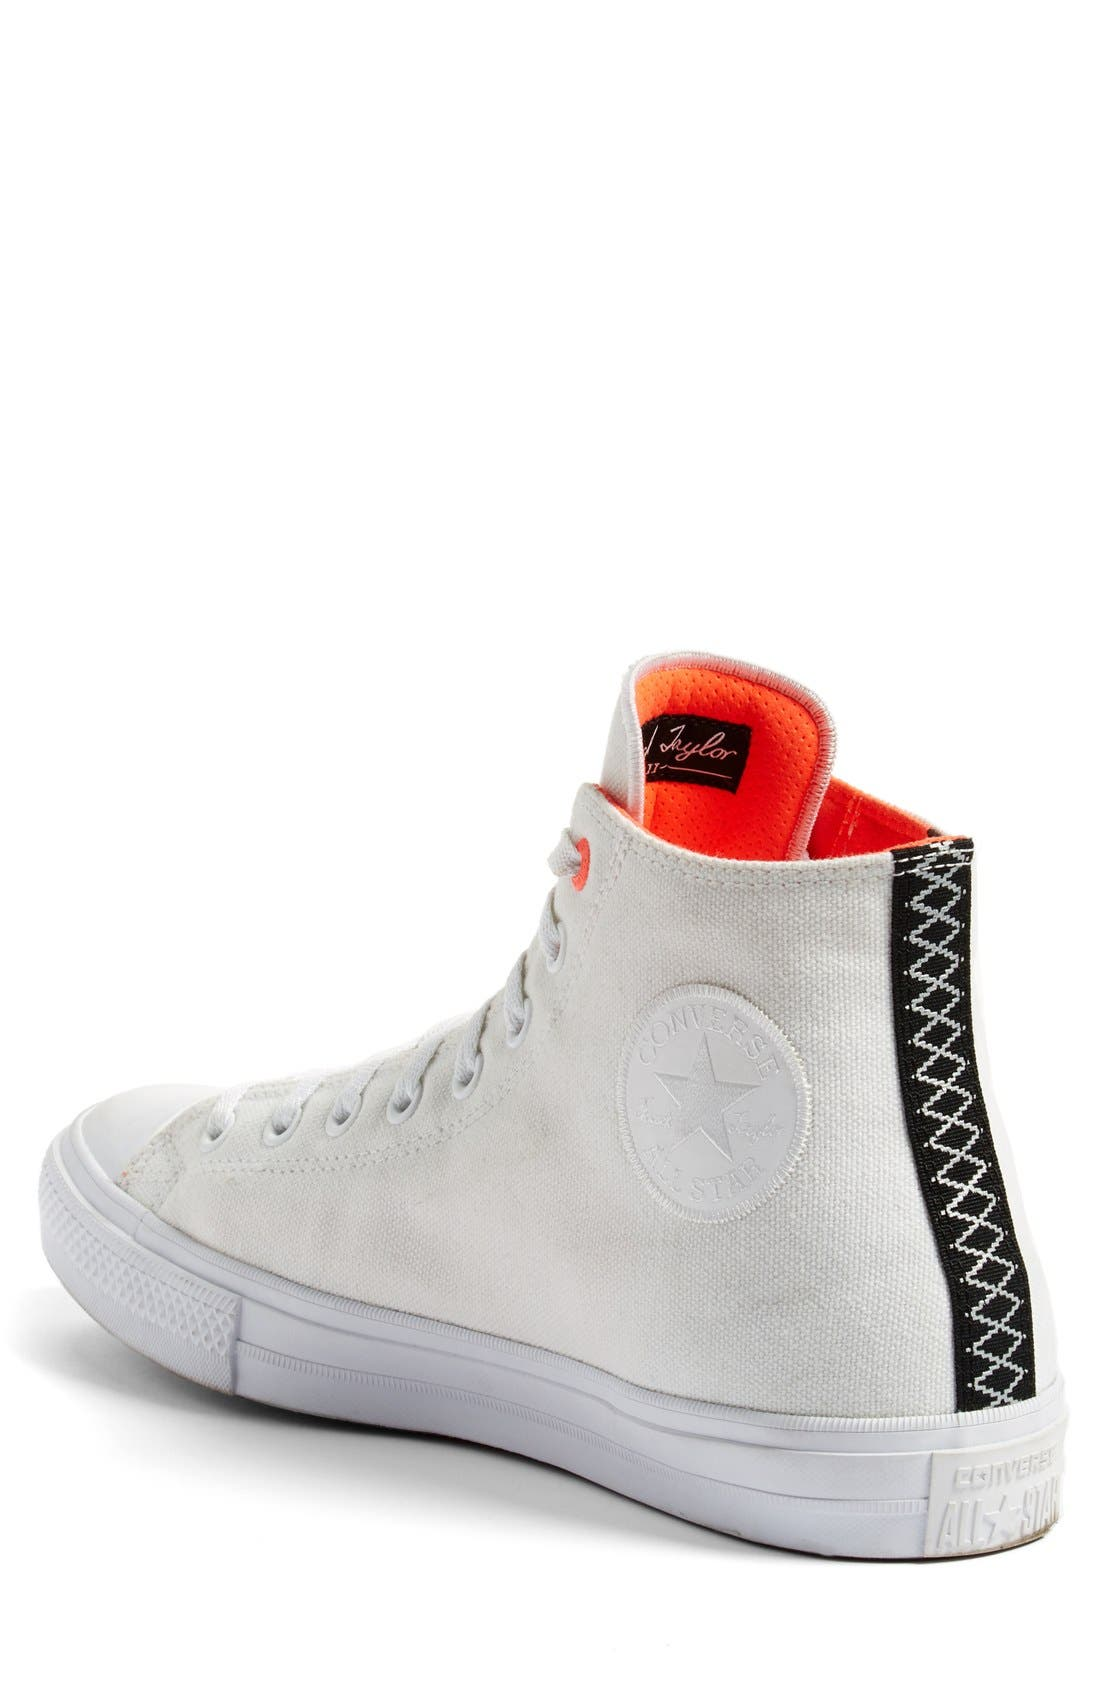 Chuck Taylor<sup>®</sup> All Star<sup>®</sup> II 'Shield' Water Repellent High Top Sneaker,                             Alternate thumbnail 2, color,                             White/ Lava/ Gum